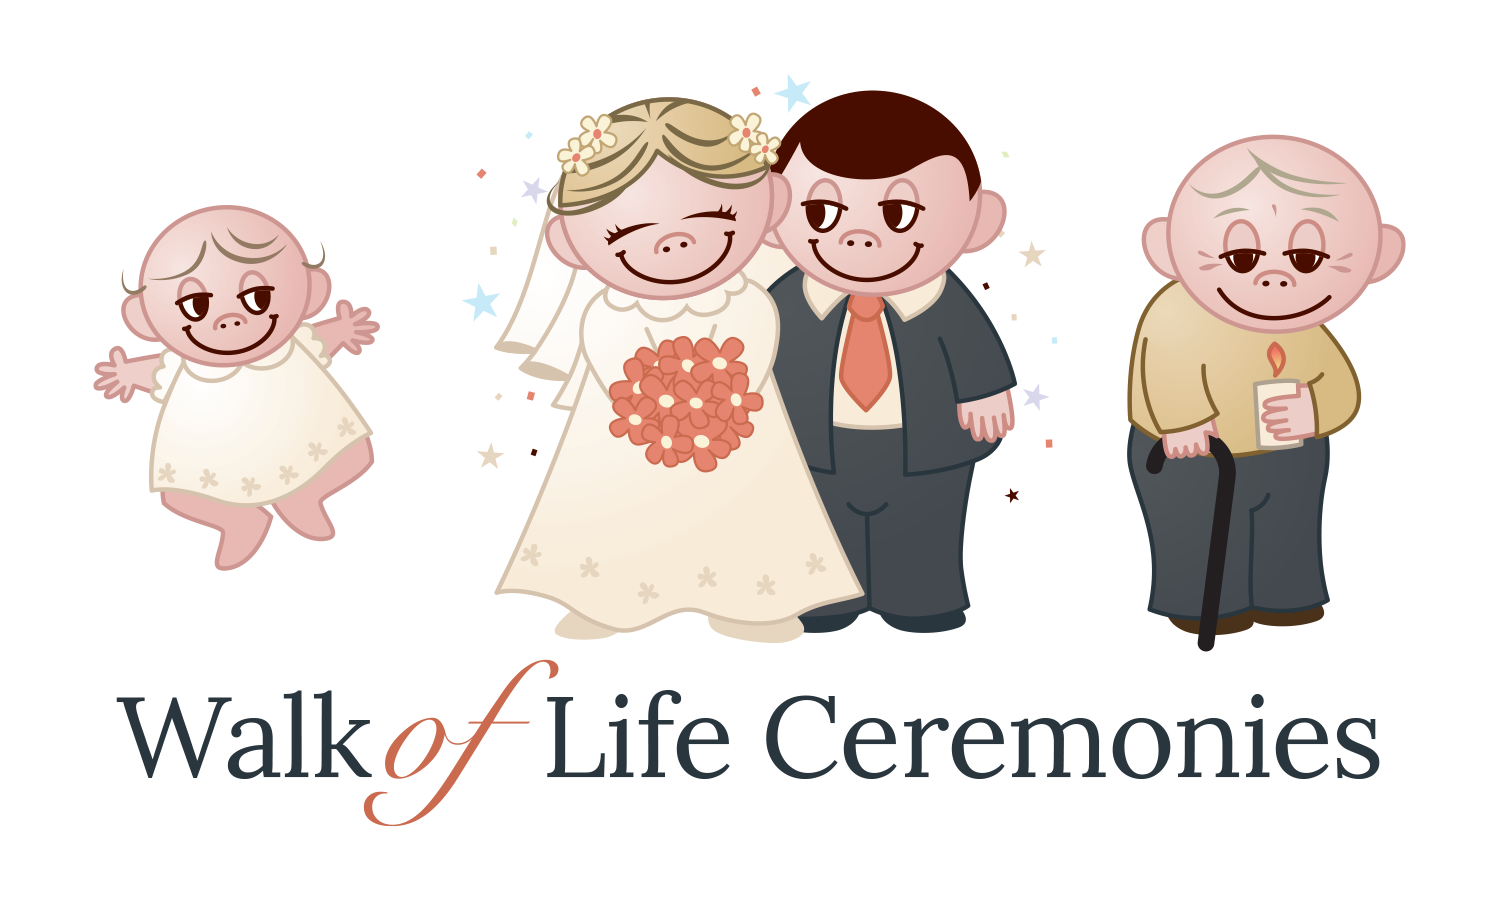 Walk of Life Ceremonies